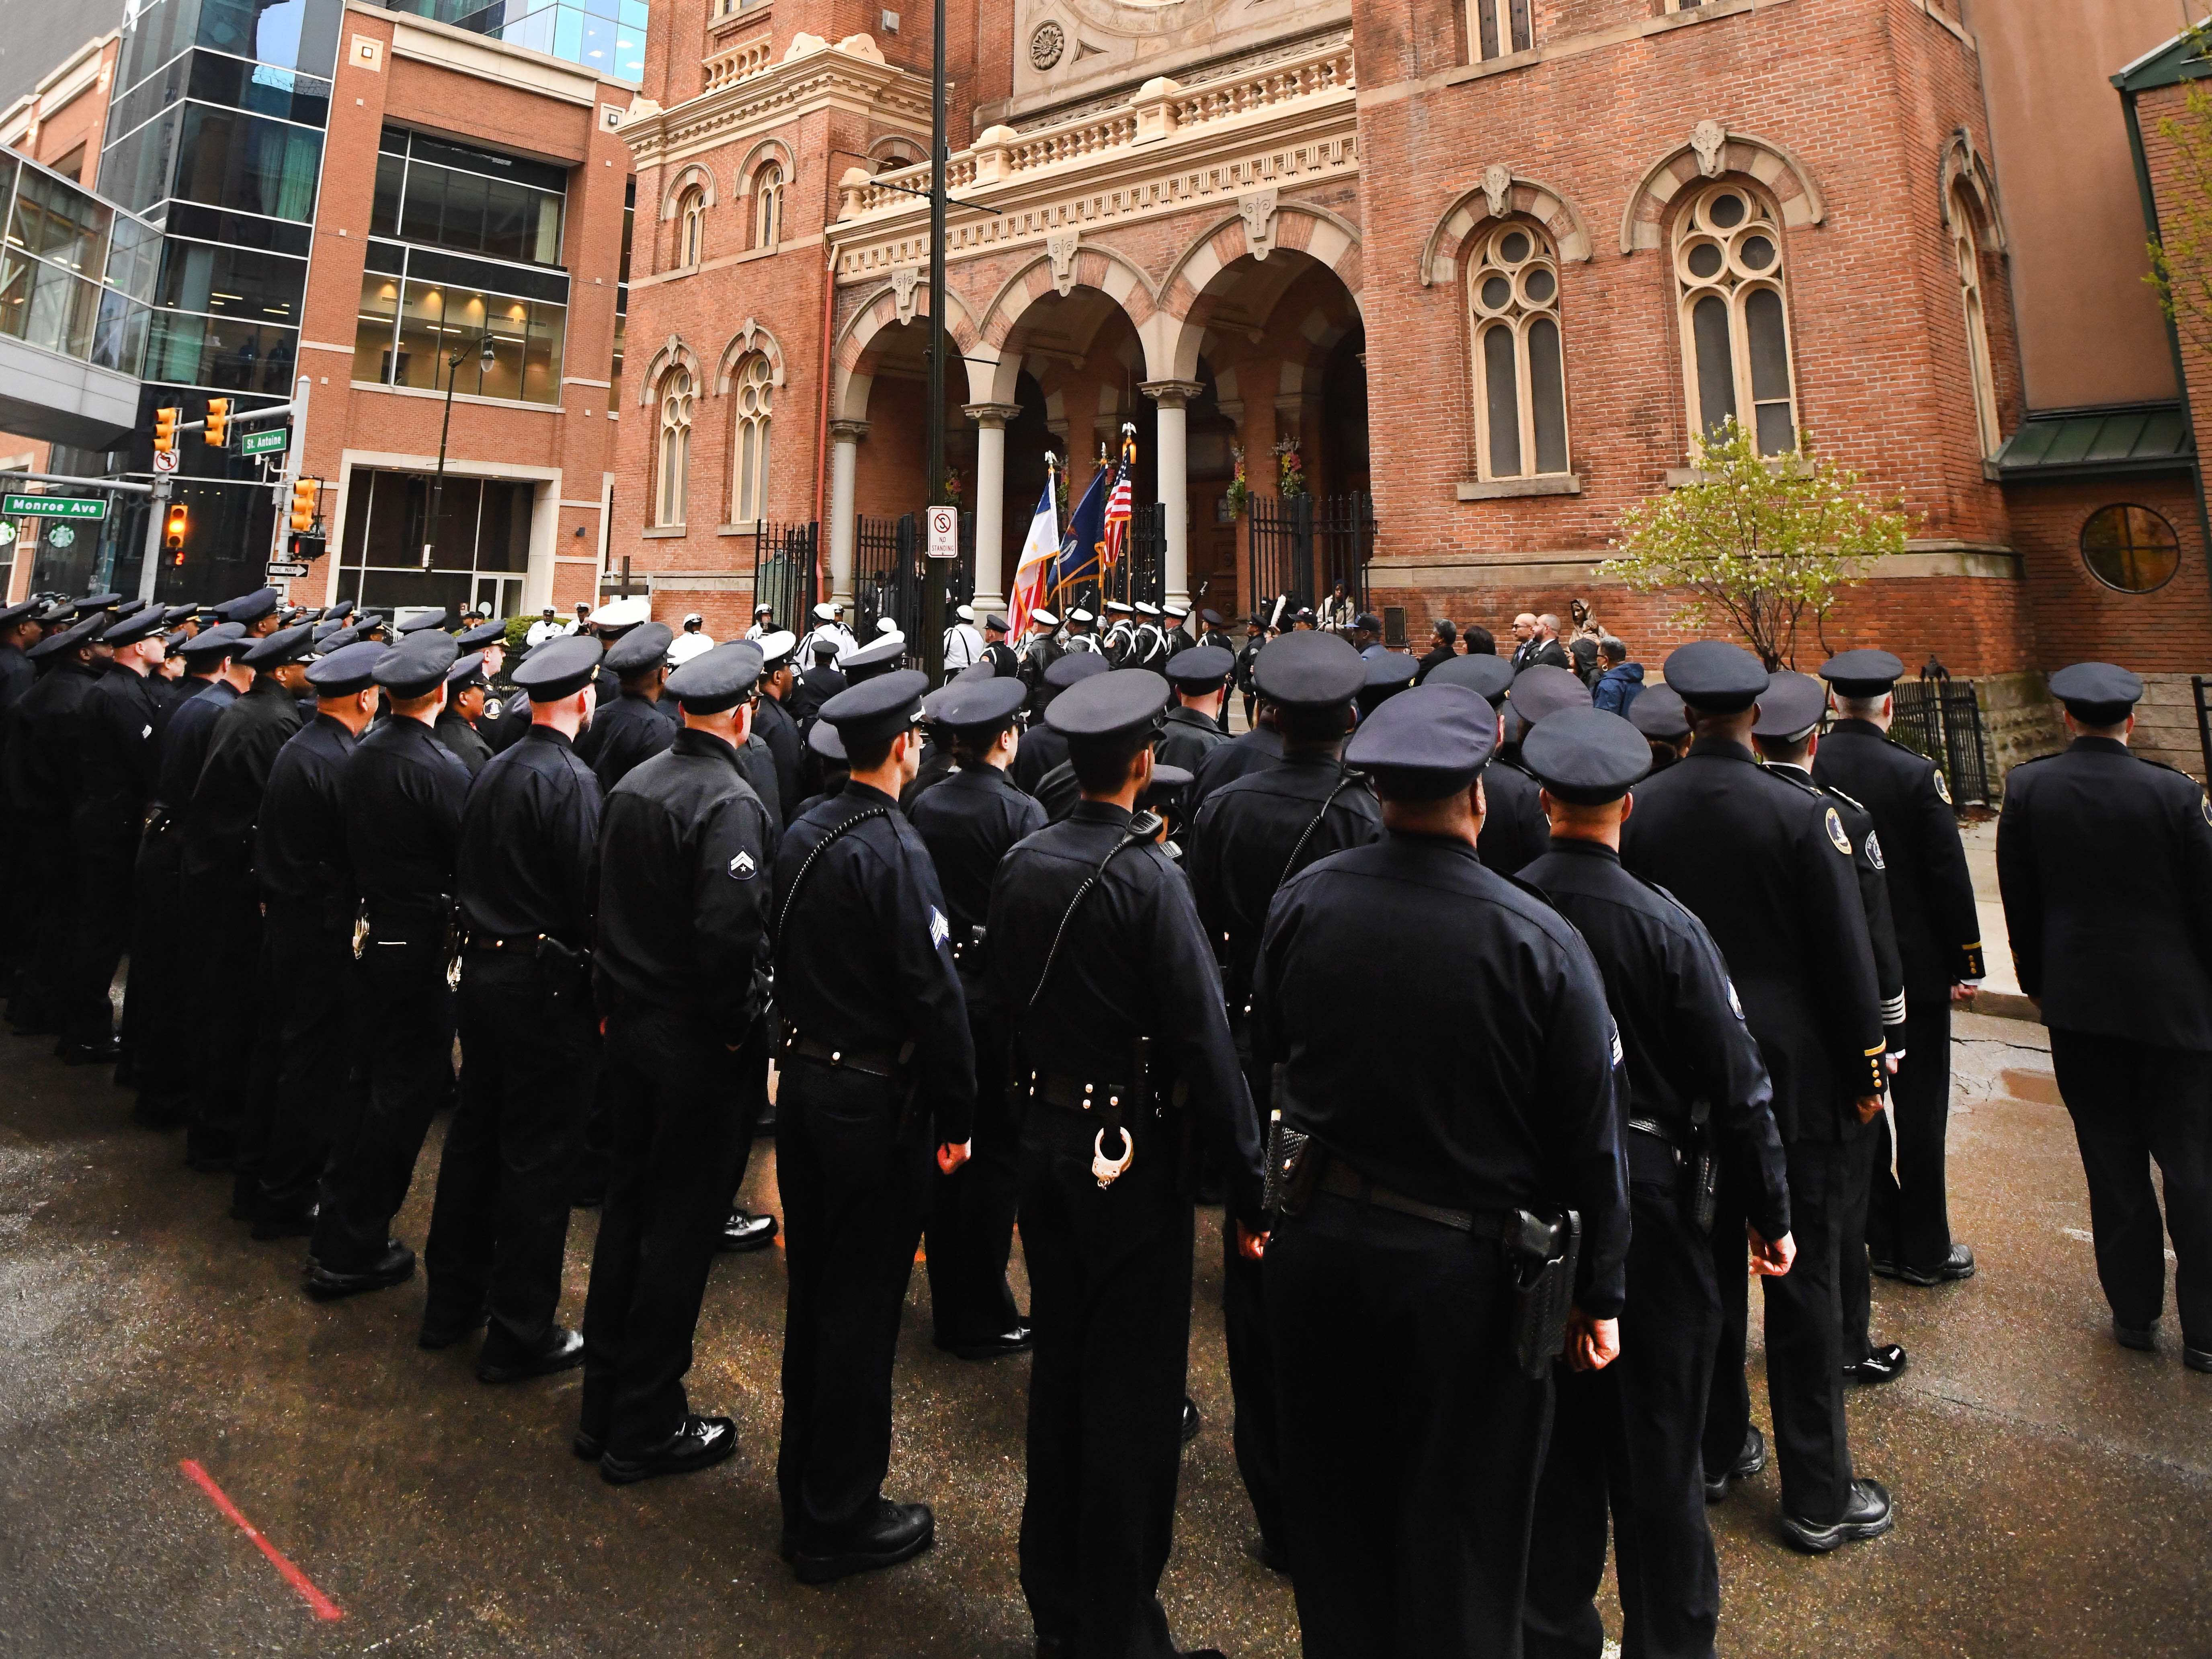 Detroit Police Officers stand at attention after marching to Old St. Mary's Church for the 46th Annual Detroit Police Interfaith Memorial Service.